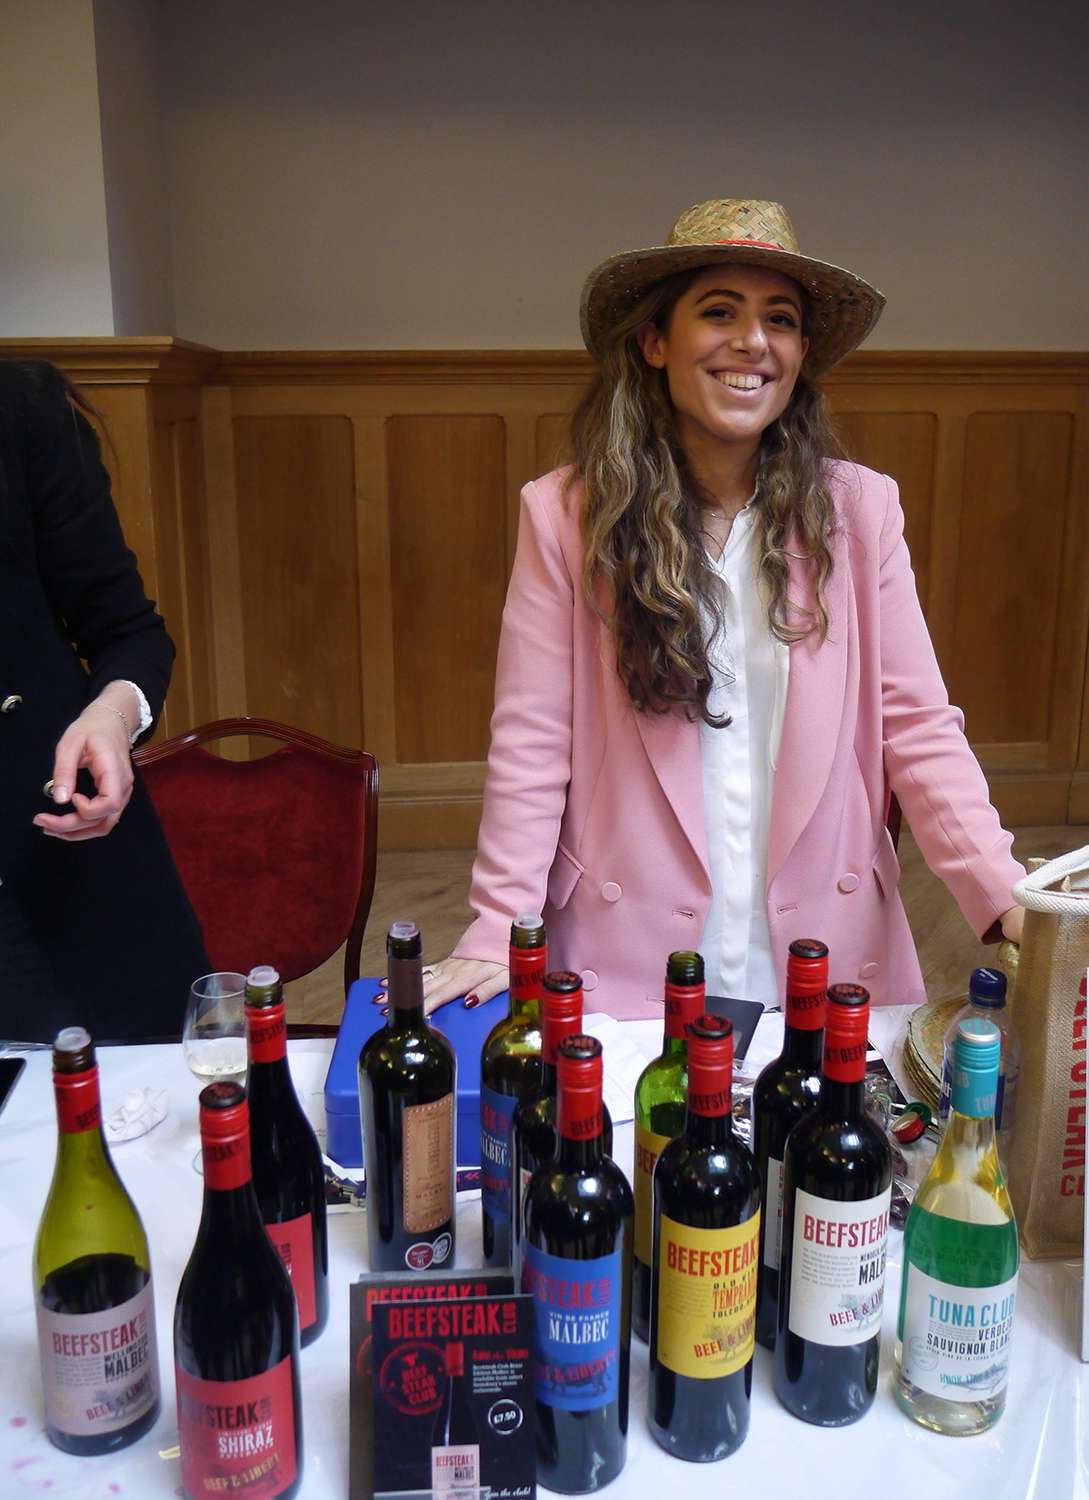 It's all about style! The Beesteak Club team brought along good wines but also the much-instagrammed panama hats.